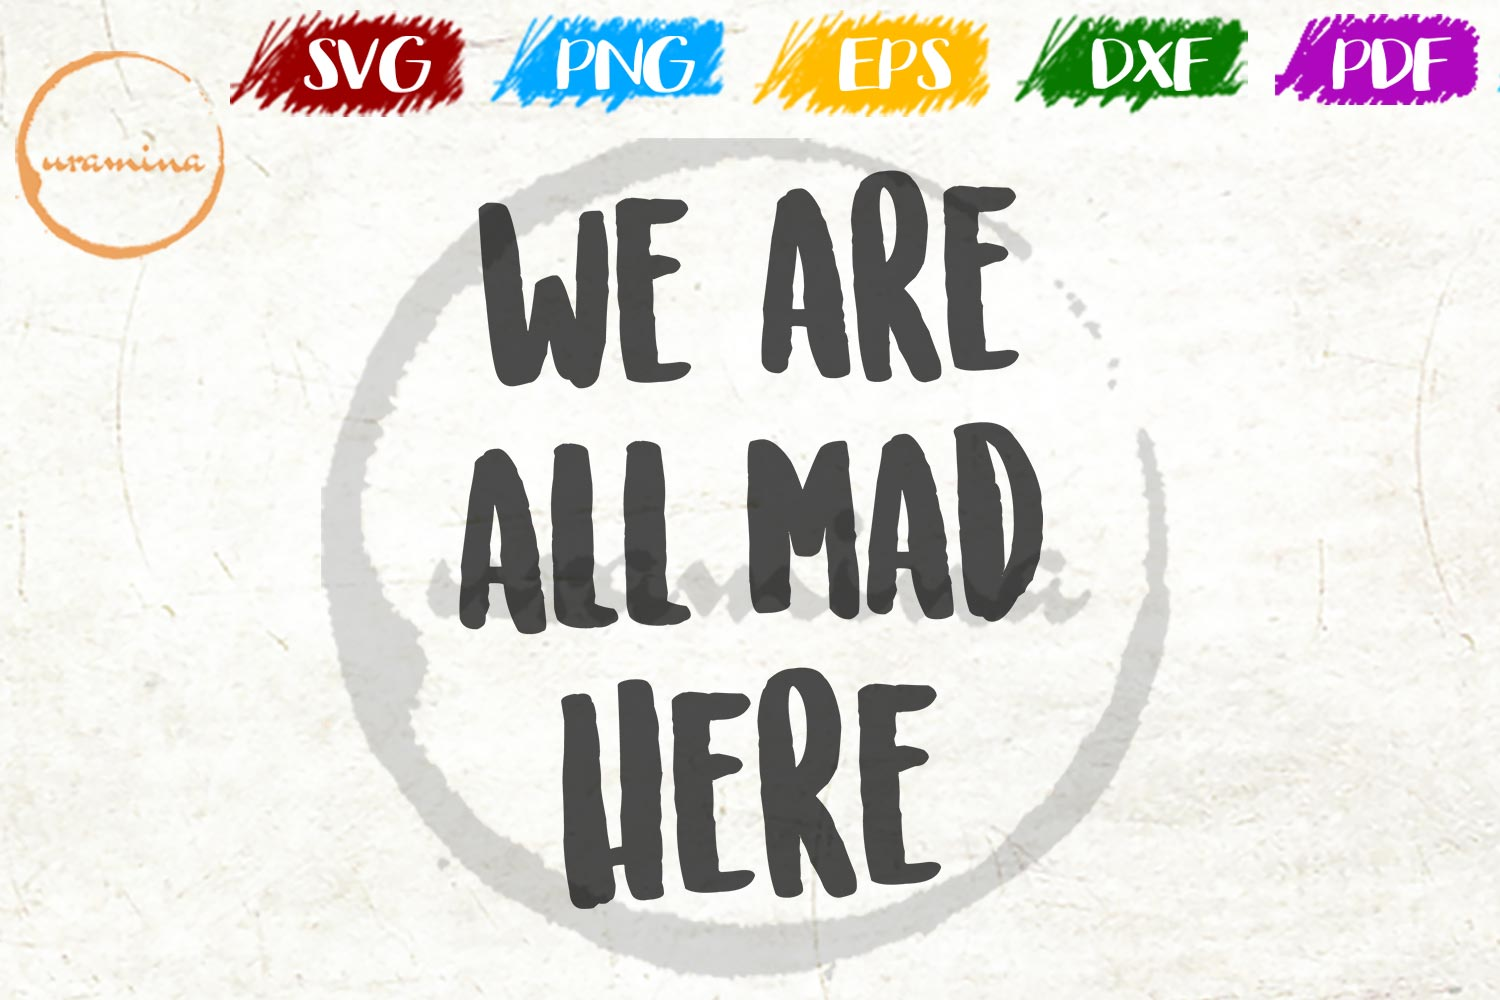 Download Free We Are All Mad Here Graphic By Uramina Creative Fabrica for Cricut Explore, Silhouette and other cutting machines.